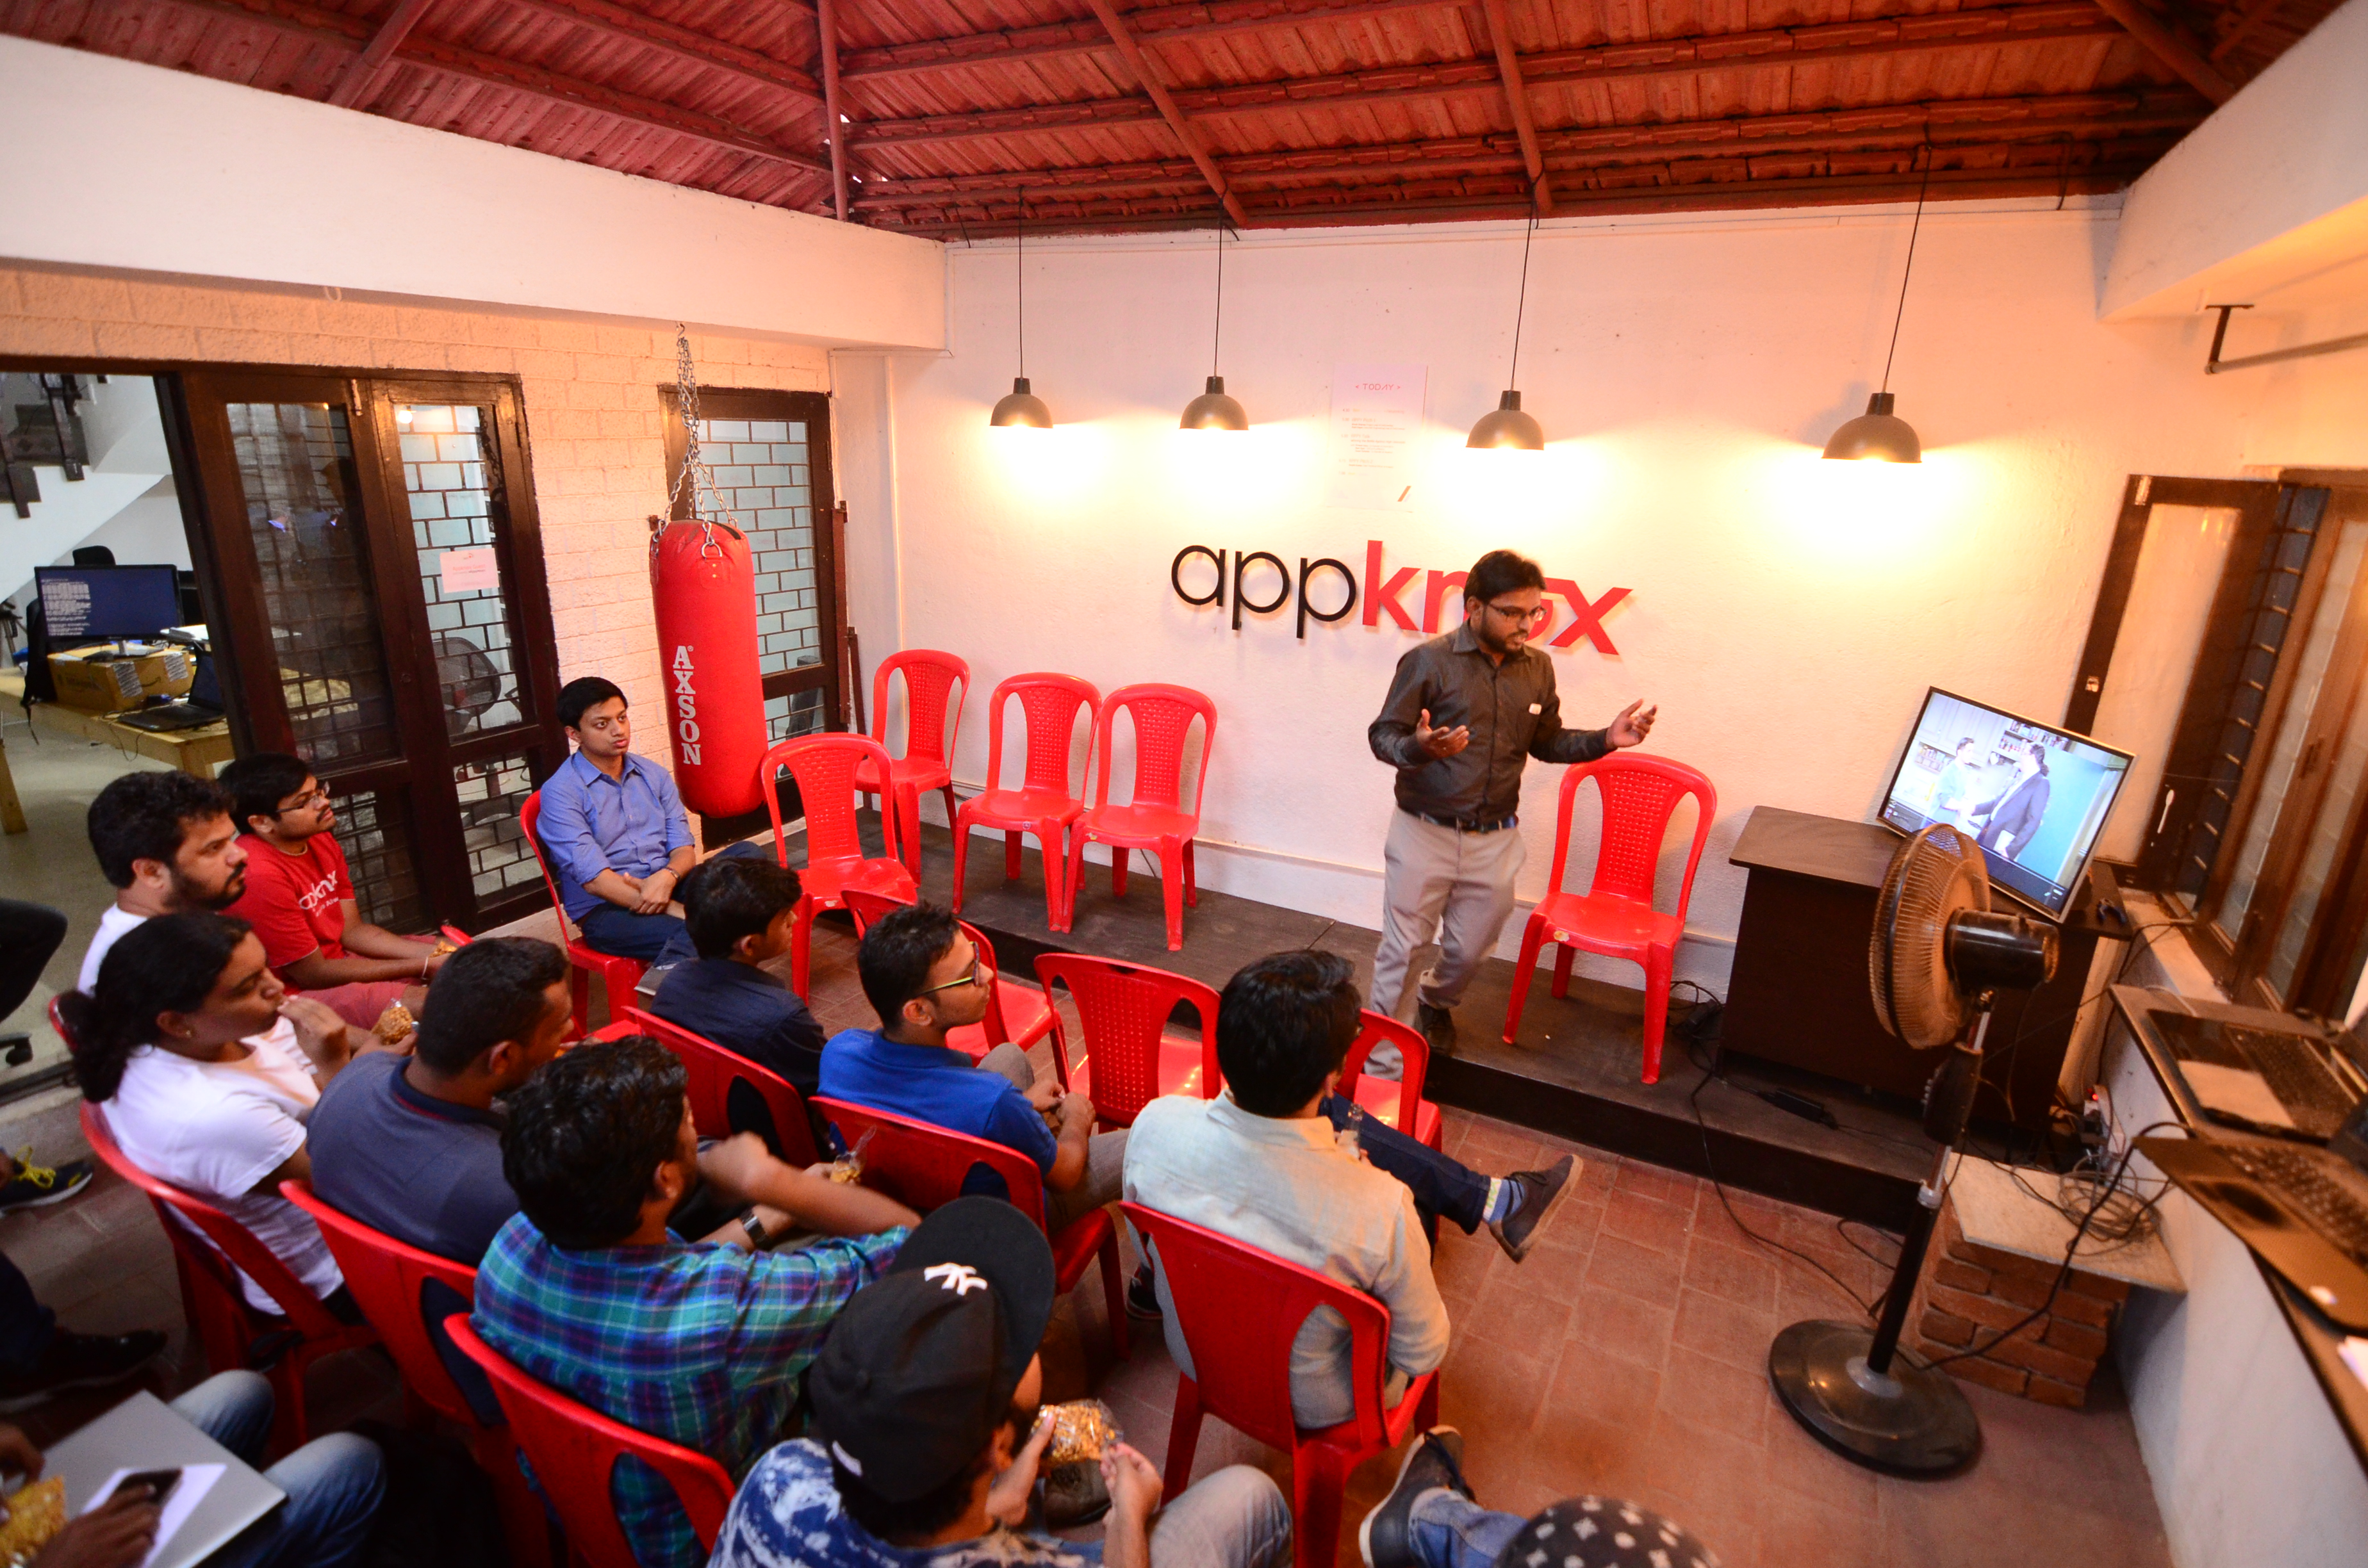 Appknox AppyHours - Knappily Pitch